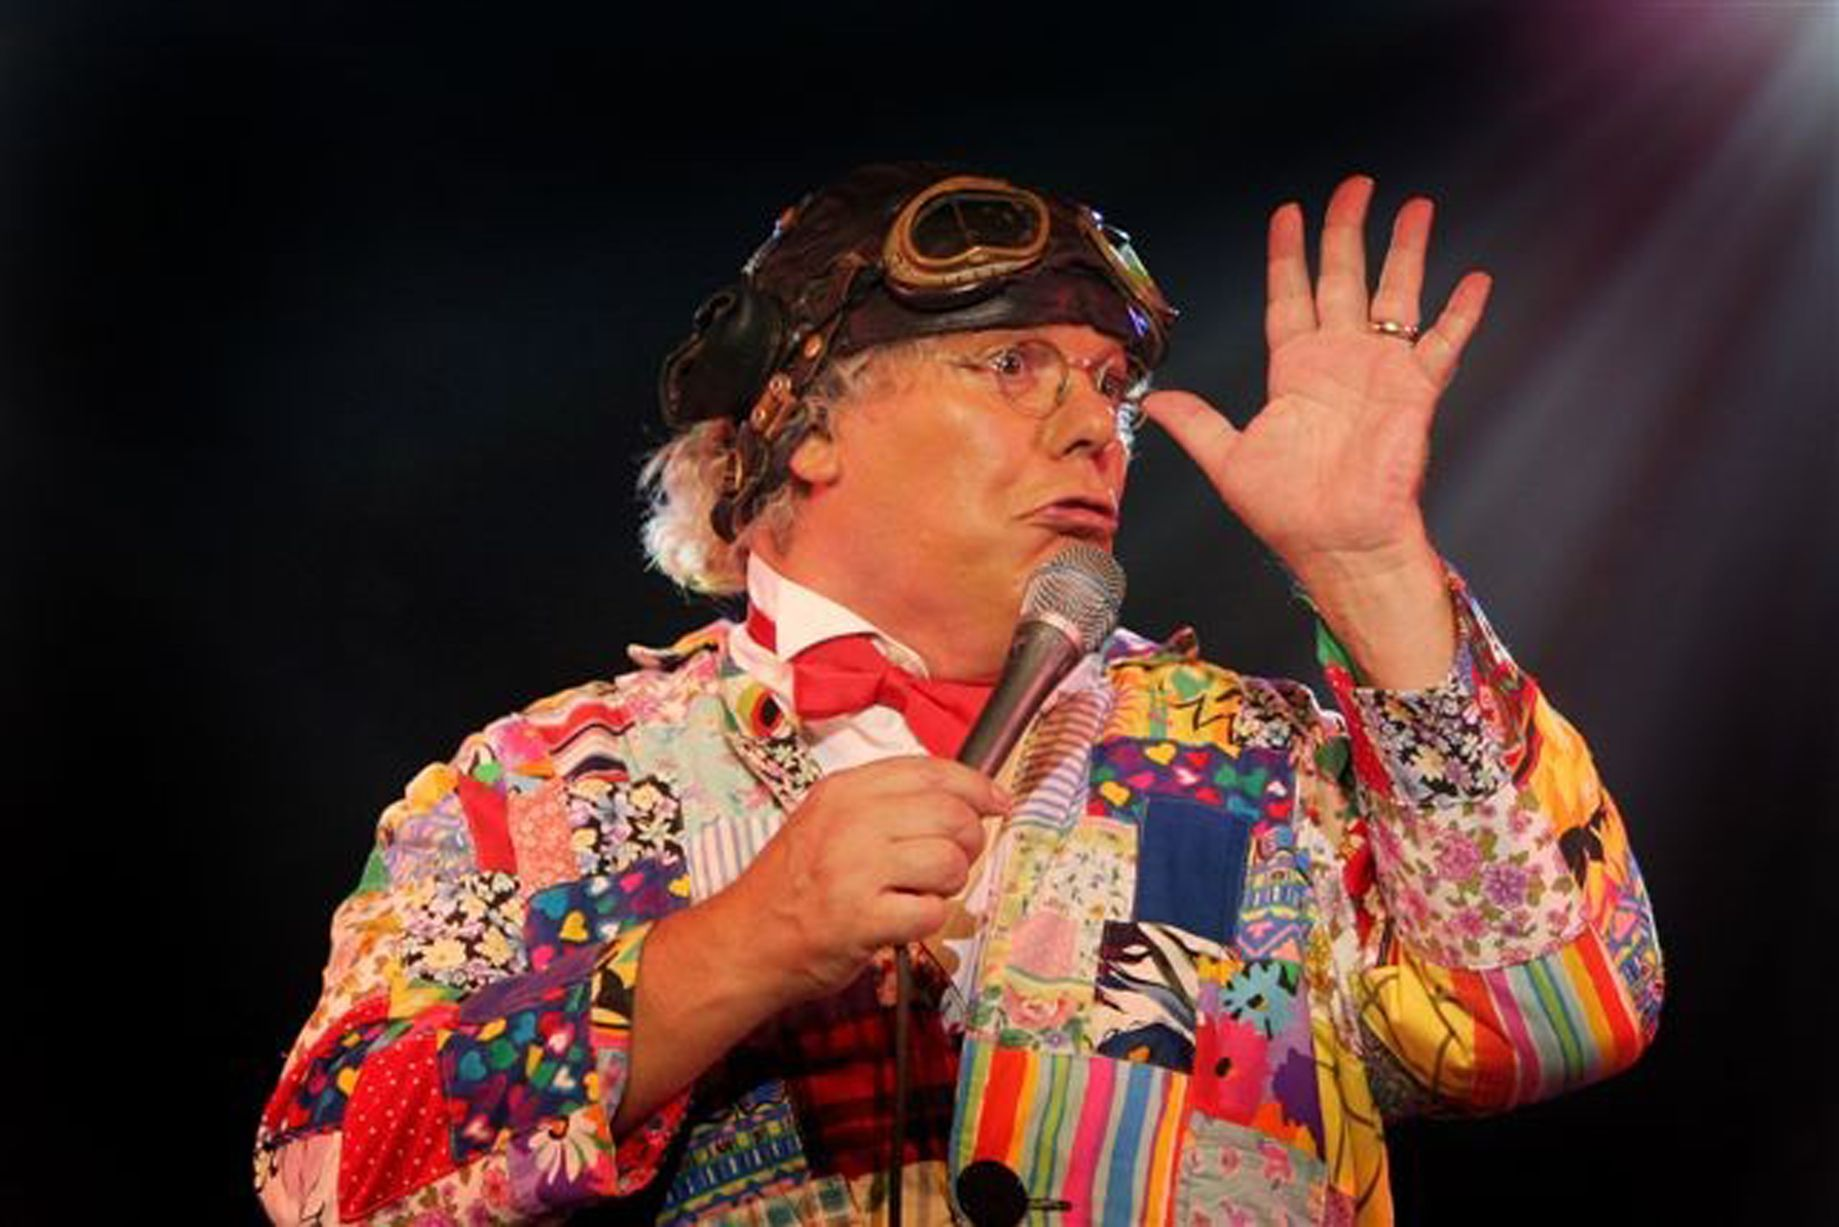 Deepthroat roy chubby brown live babe